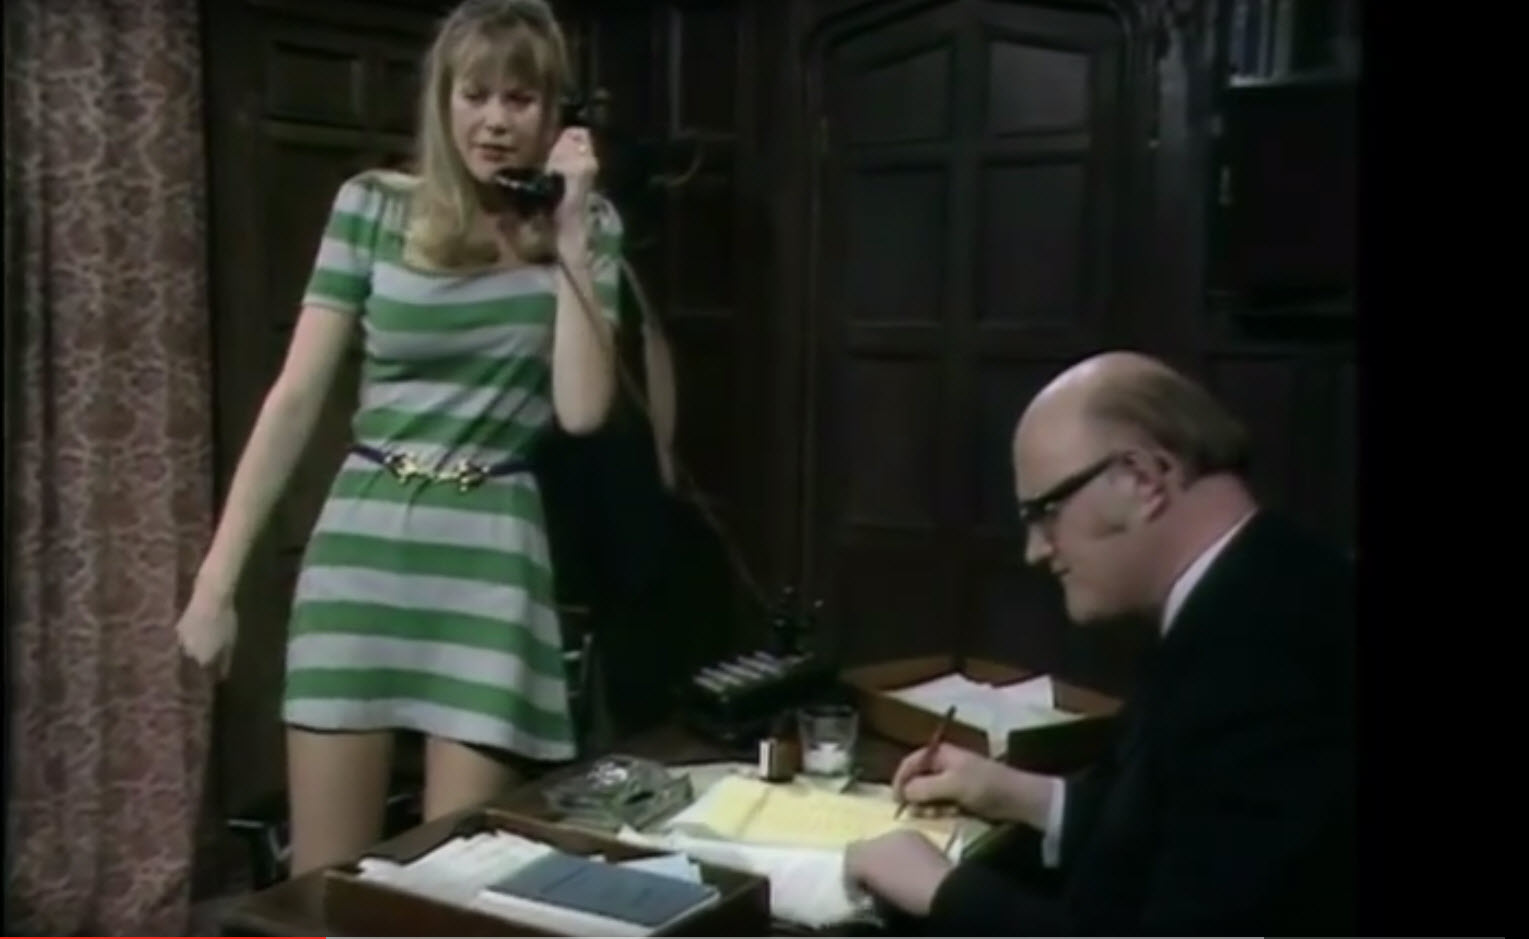 Mr. Rumbold druk aan het werk in 'Are you being served?'